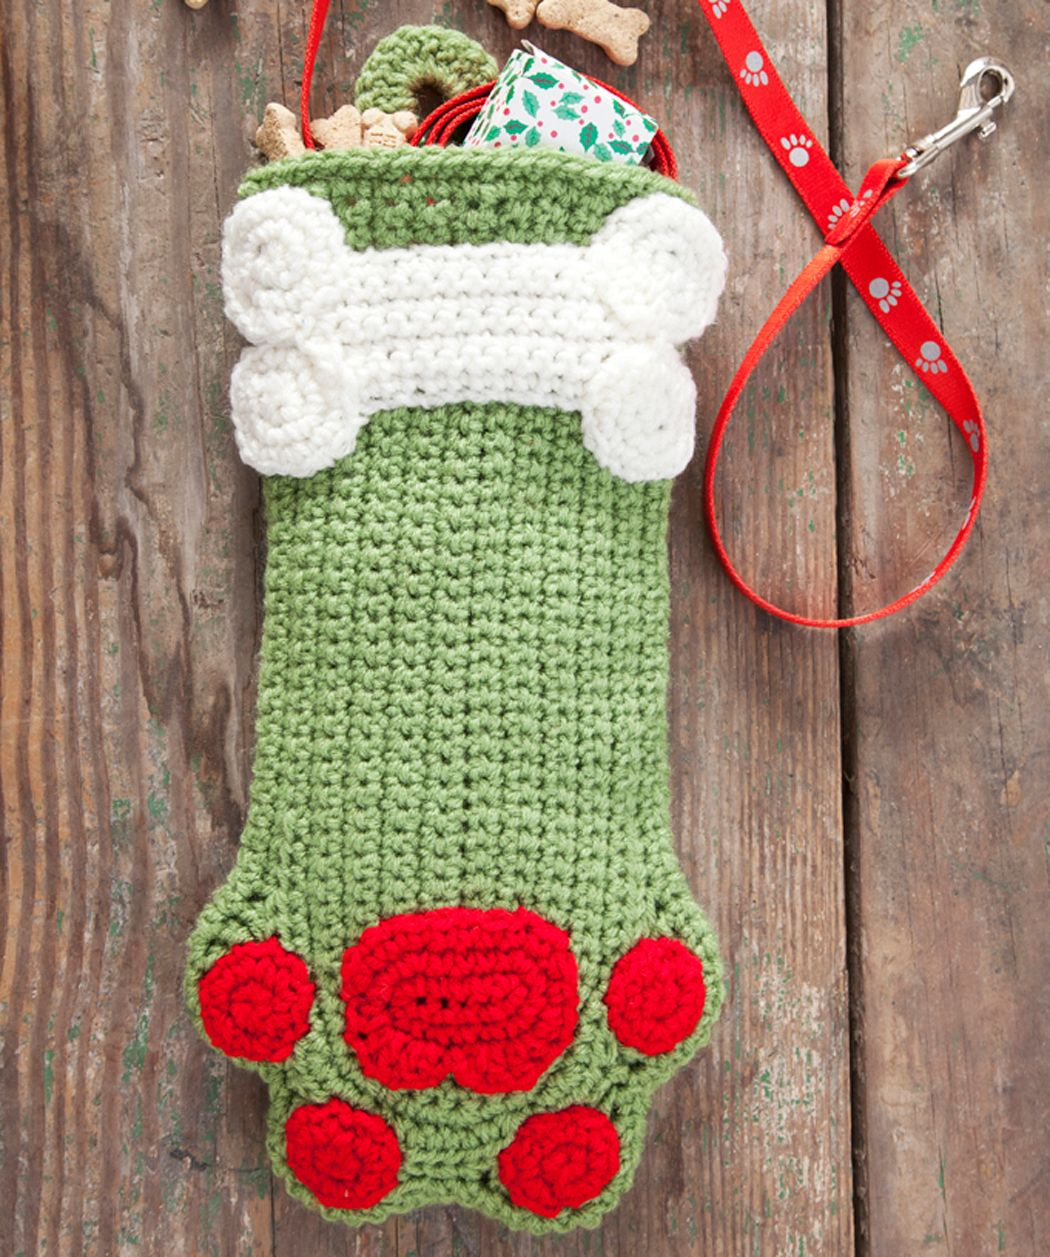 Dog Paws Christmas Stocking crochet pattern.  Making this for two special Yorkies this year!